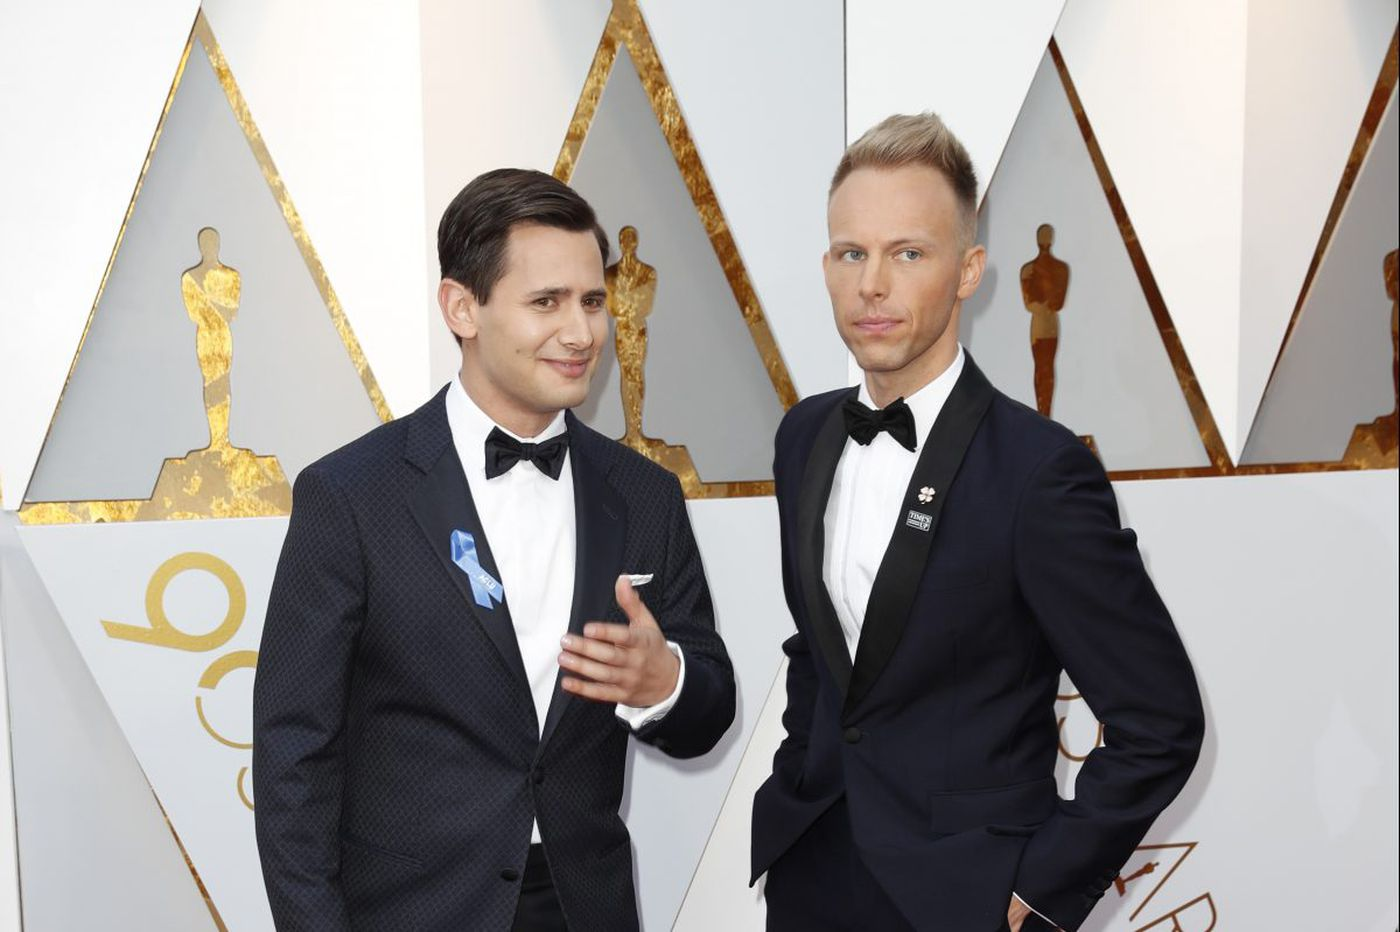 Oscars 2018: Ardmore's Benj Pasek loses best original song category